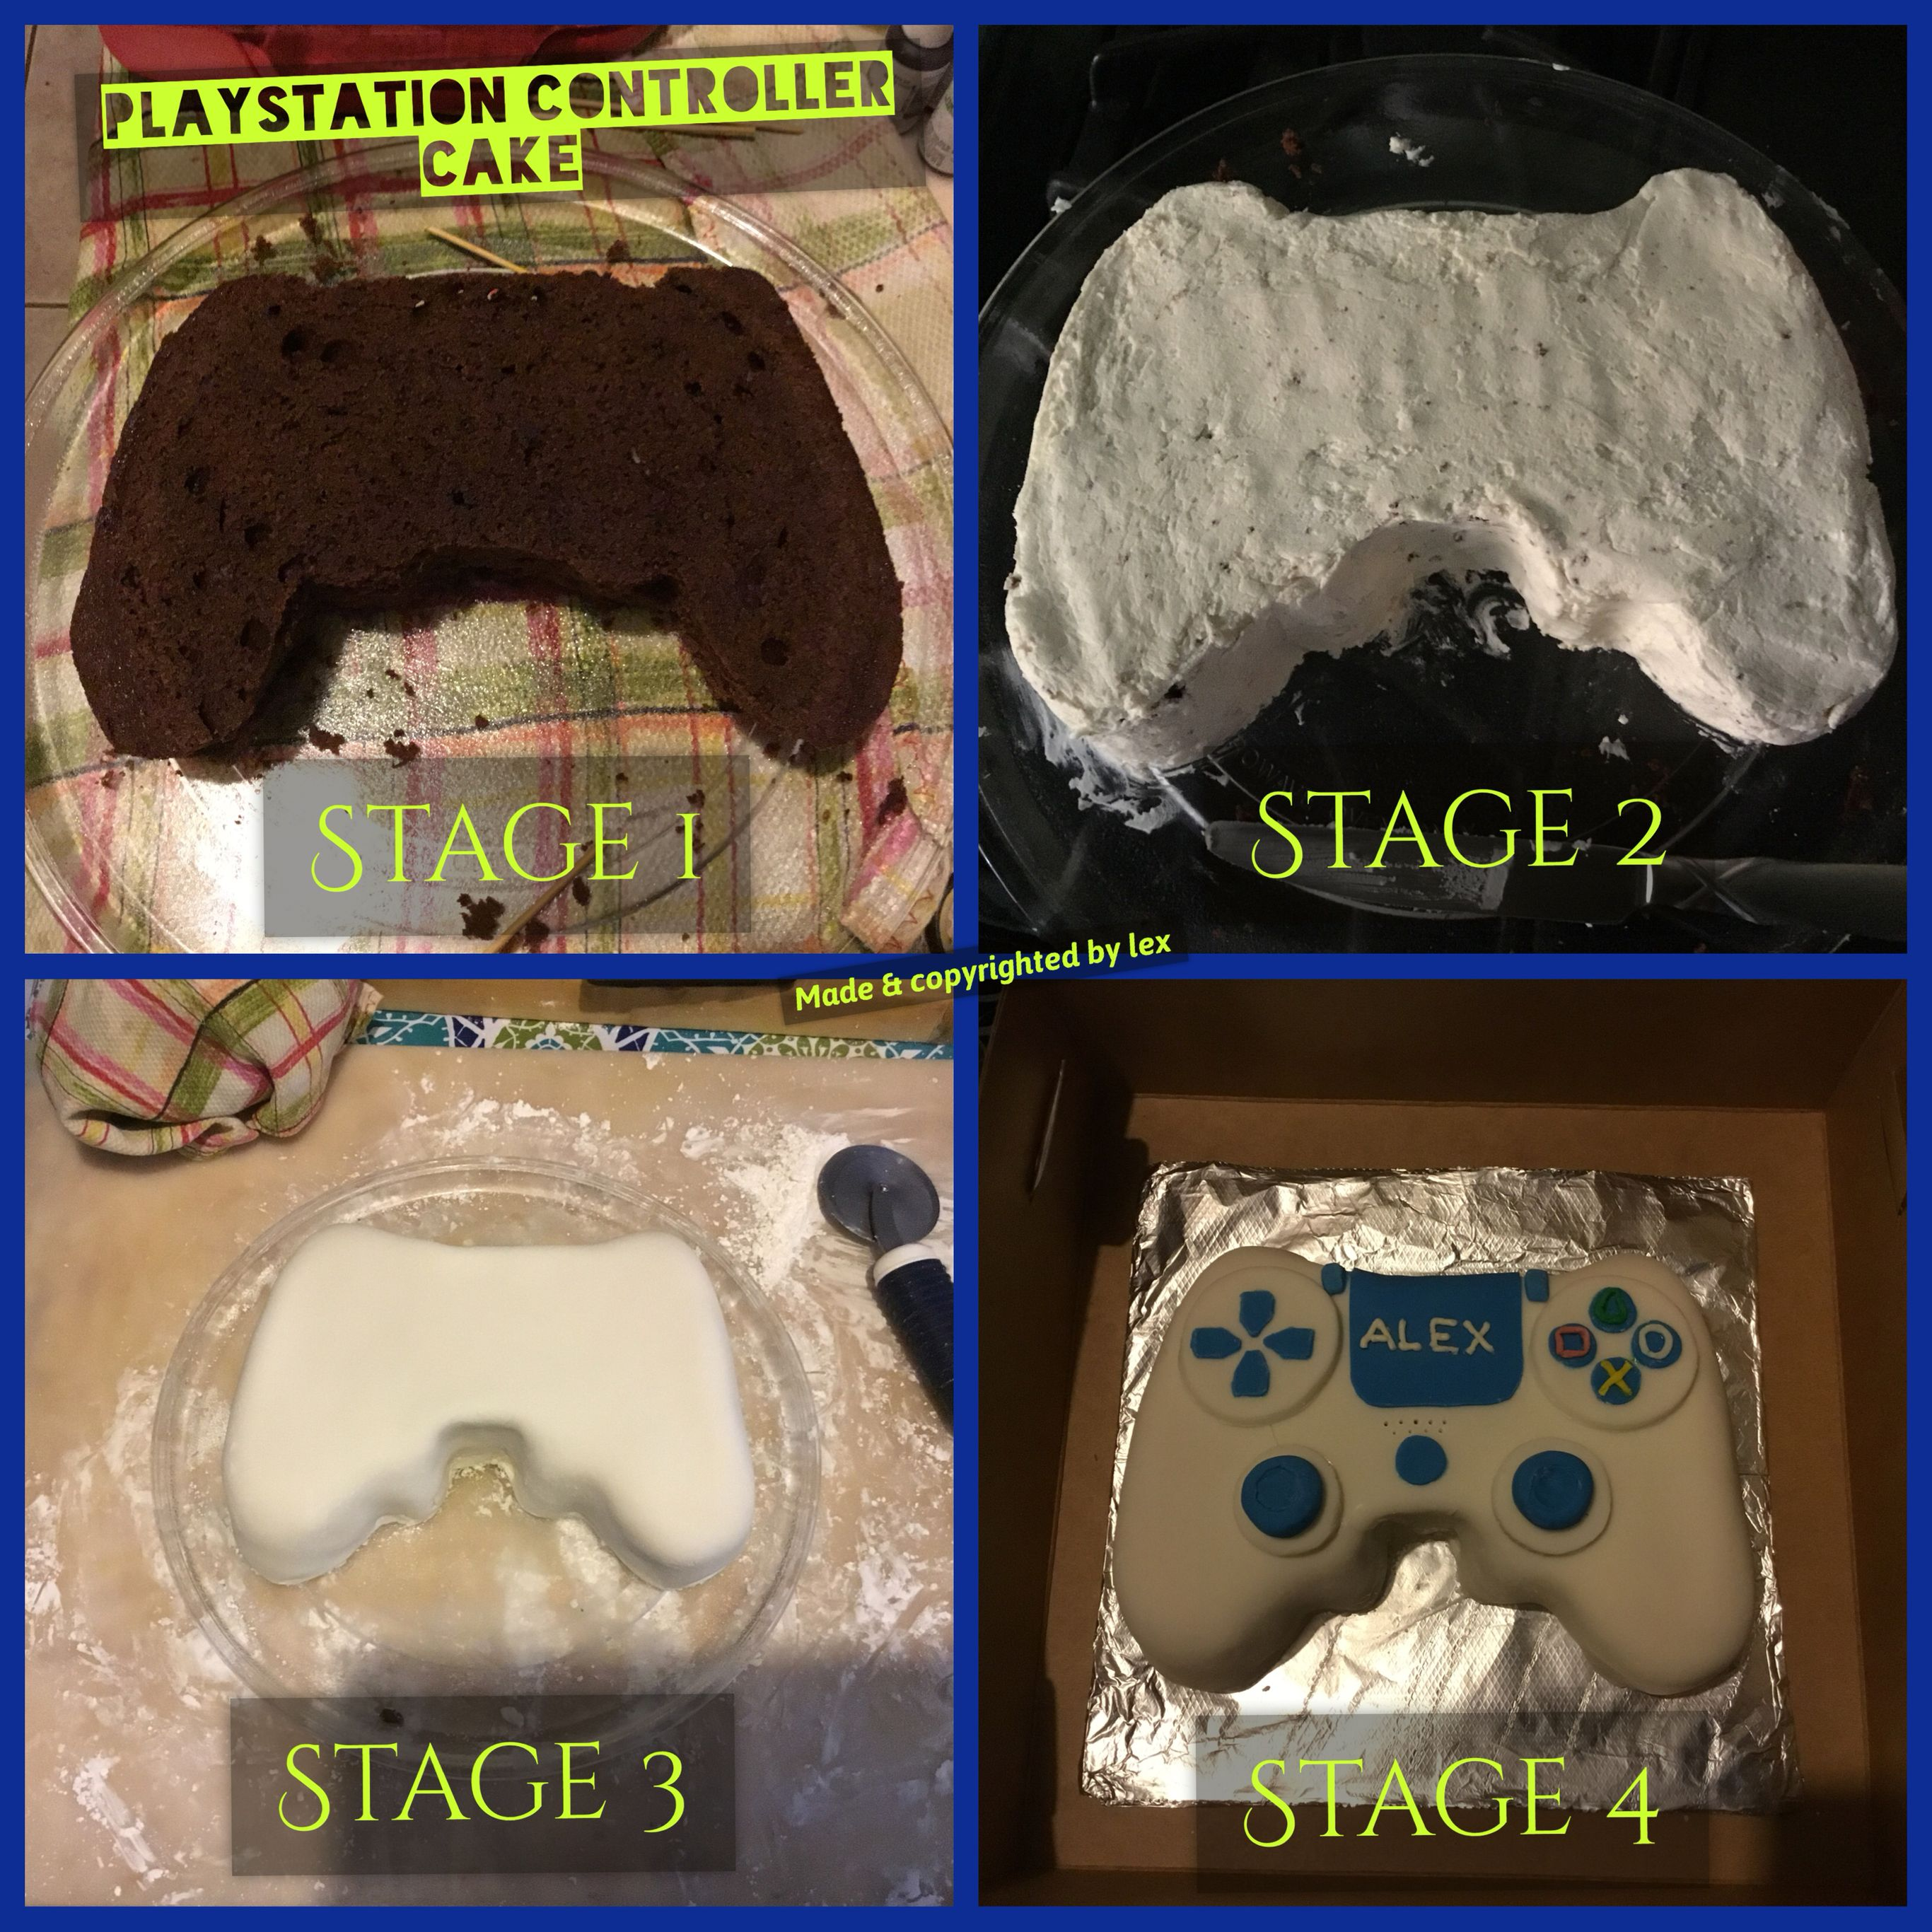 Playstation 4 Controller Cake Playstation Cake Video Game